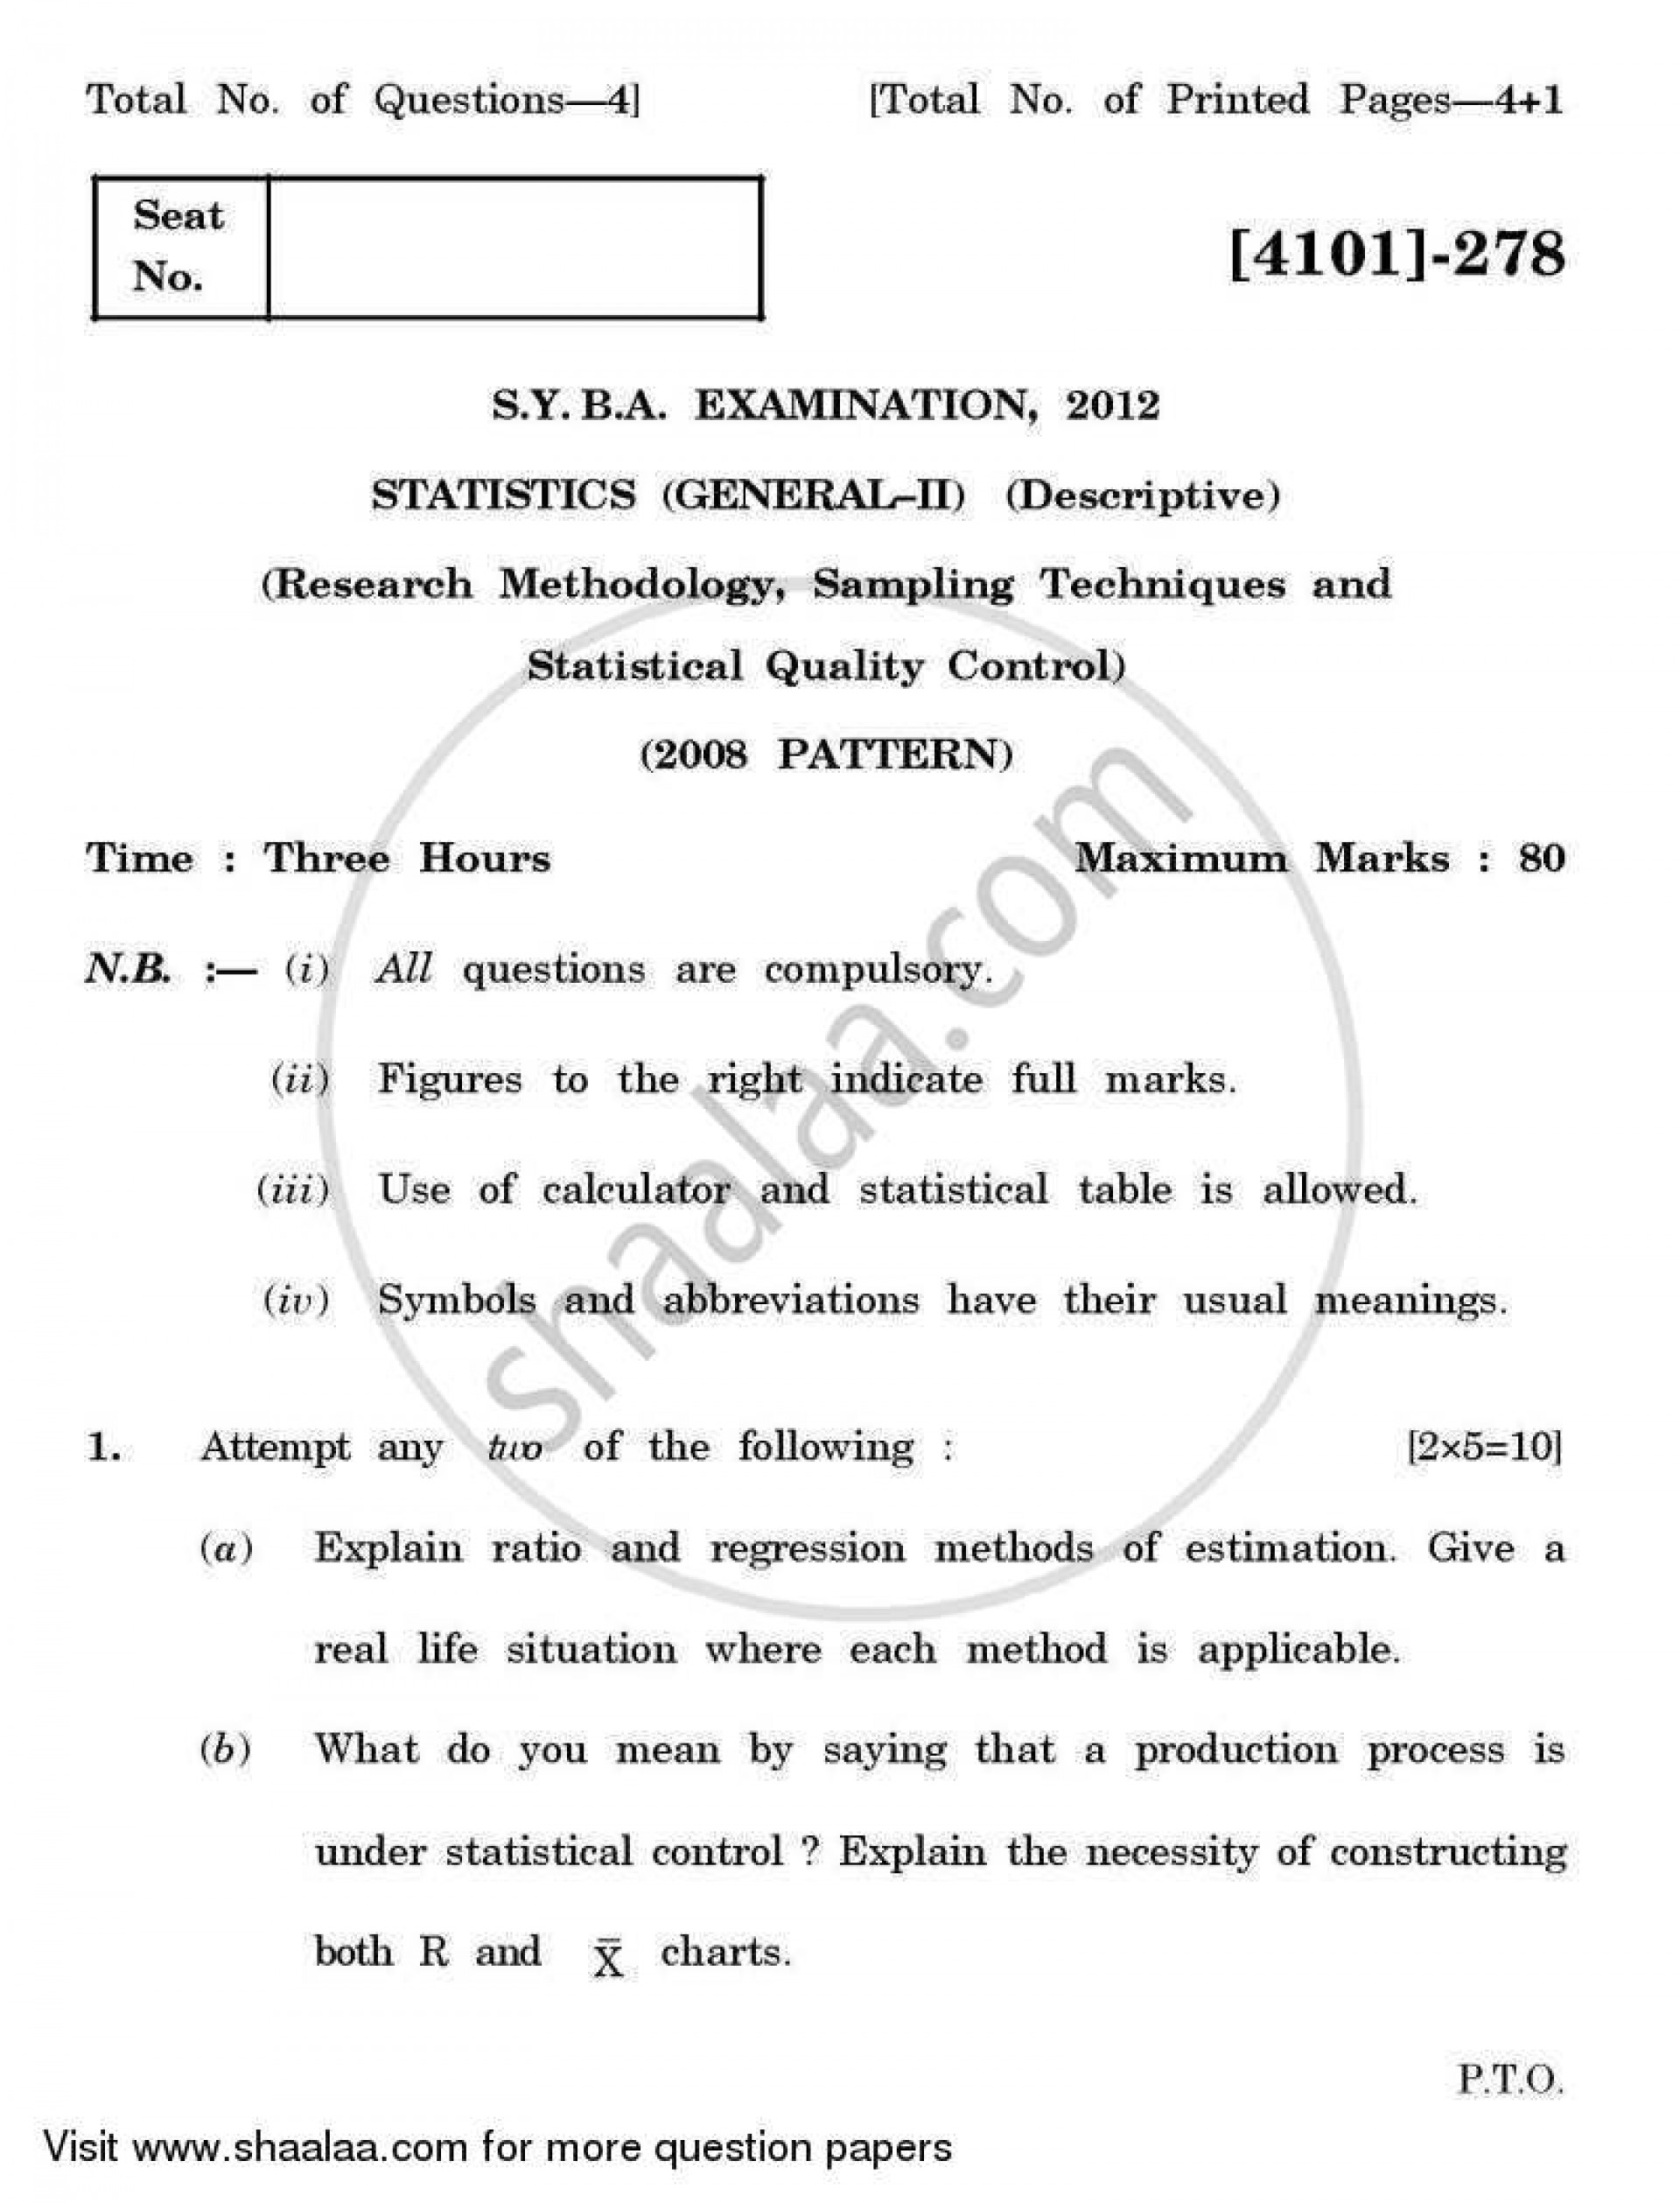 014 University Of Pune Bachelor Statistics General Paper Research Methodology Sampling Techniques Statistical Quality Control Syba 2nd Year 2012 25713754a7140480982090cf66c10c20 Impressive Sample For Writing Pdf 1920